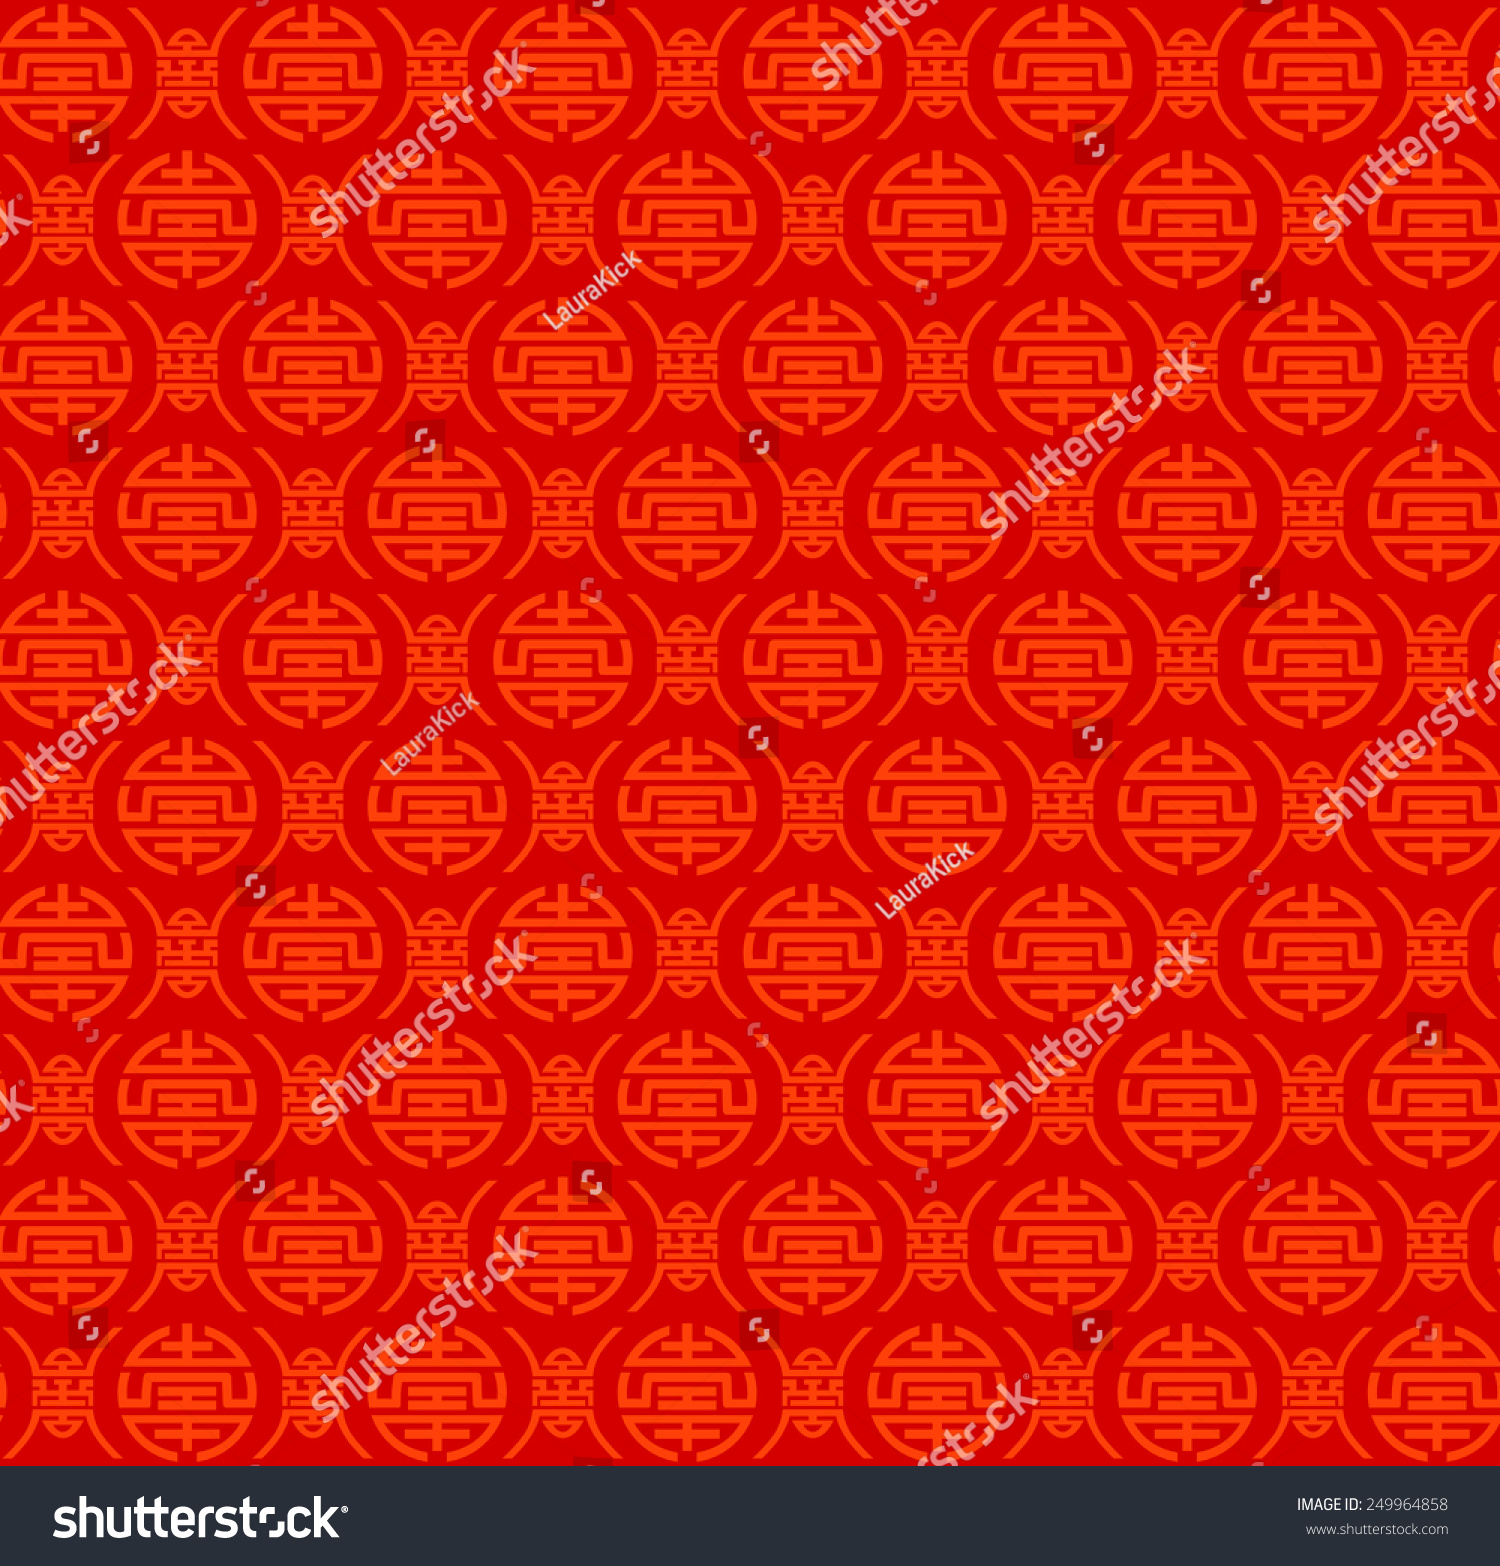 Seamless Pattern Of The Vintage Chinese Symbol Shou Meaning Good